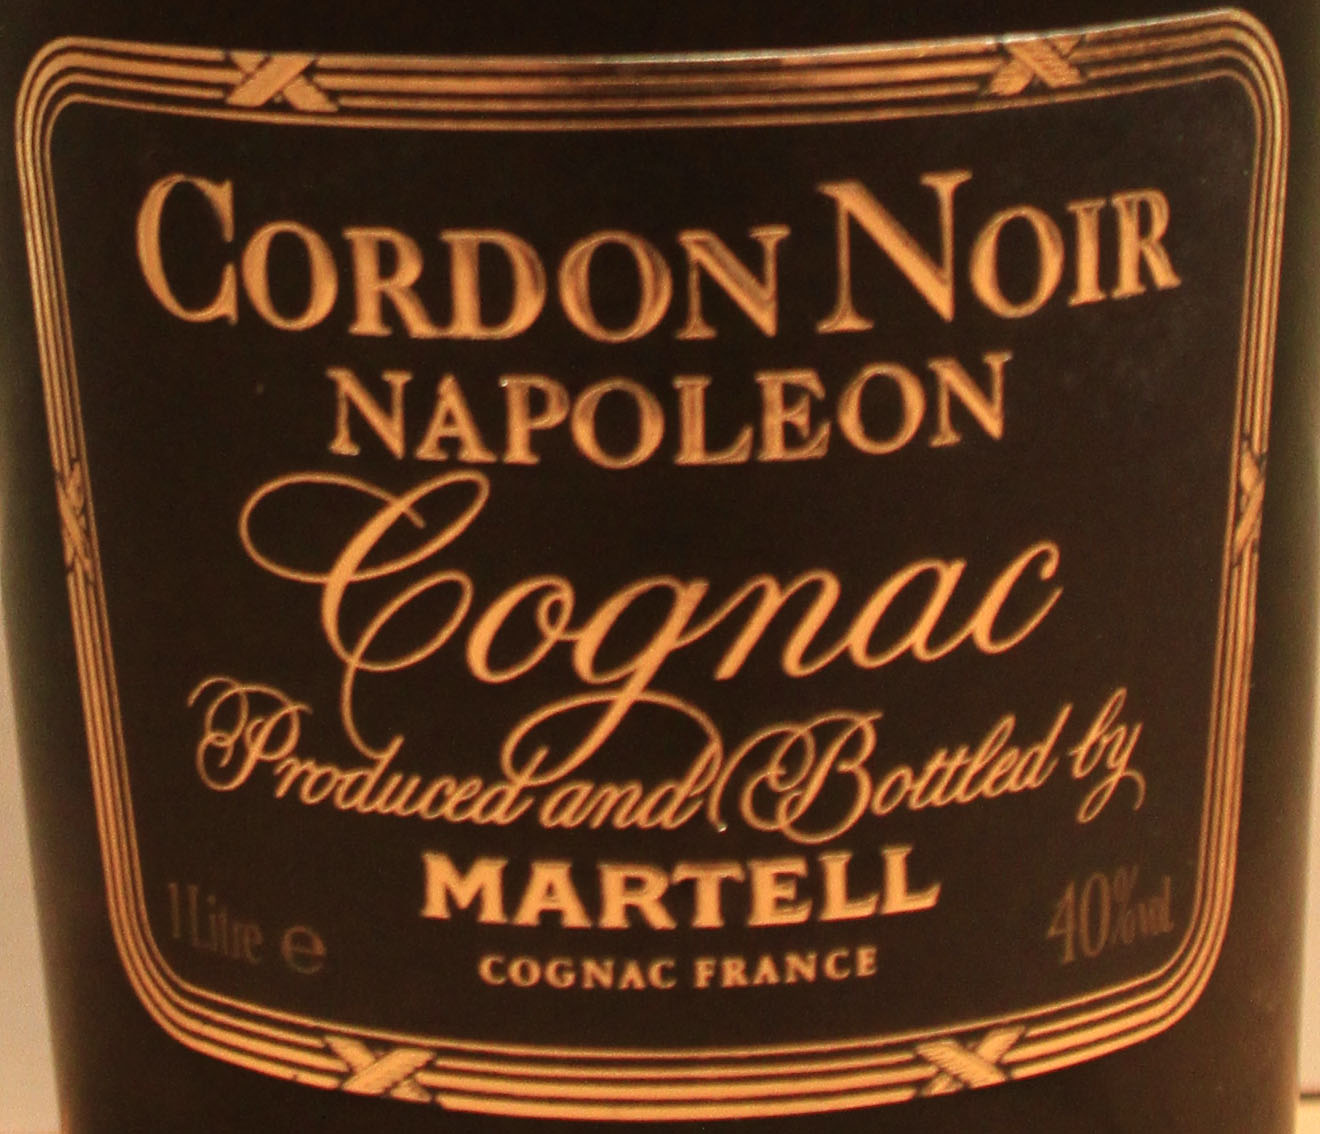 Martell Cordon Noir Napoleon Cognac: Adjusted Colour with Natural Caramel